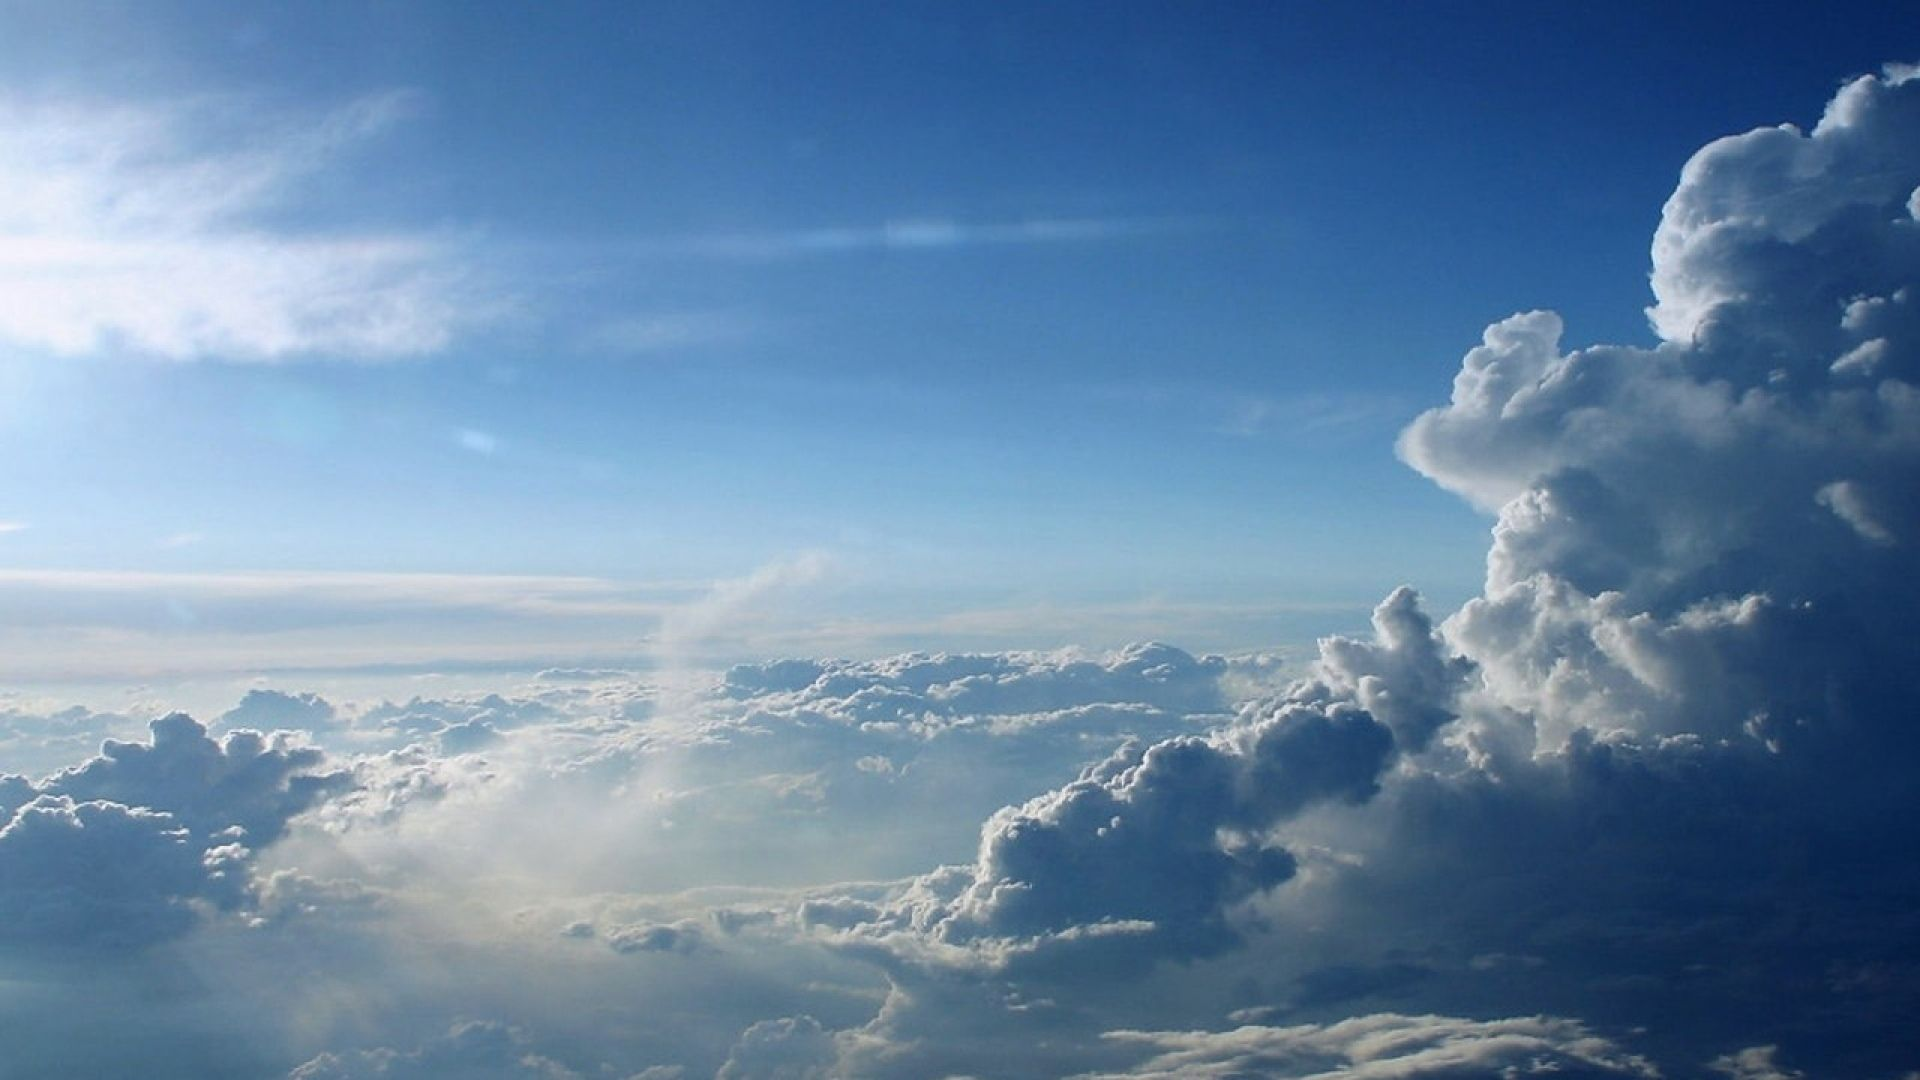 Download Wallpaper 1920x1080 Clouds Height Blue White Full Hd 1080p Hd Background Clouds Cloud Wallpaper Background